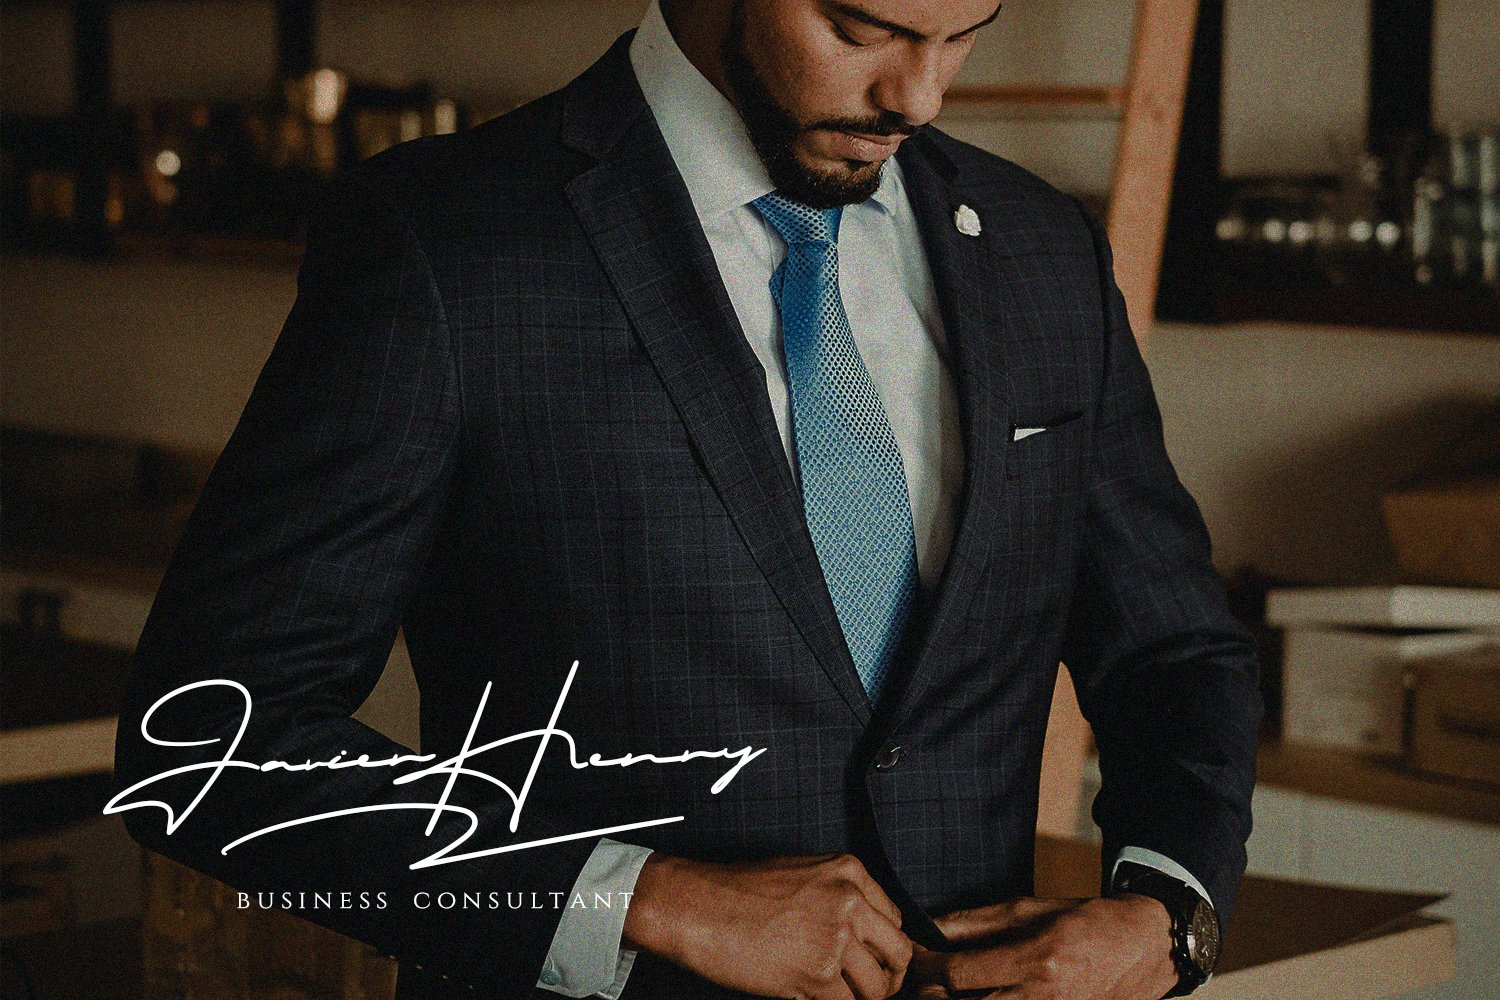 The font looks like the signature of the company's CEO.